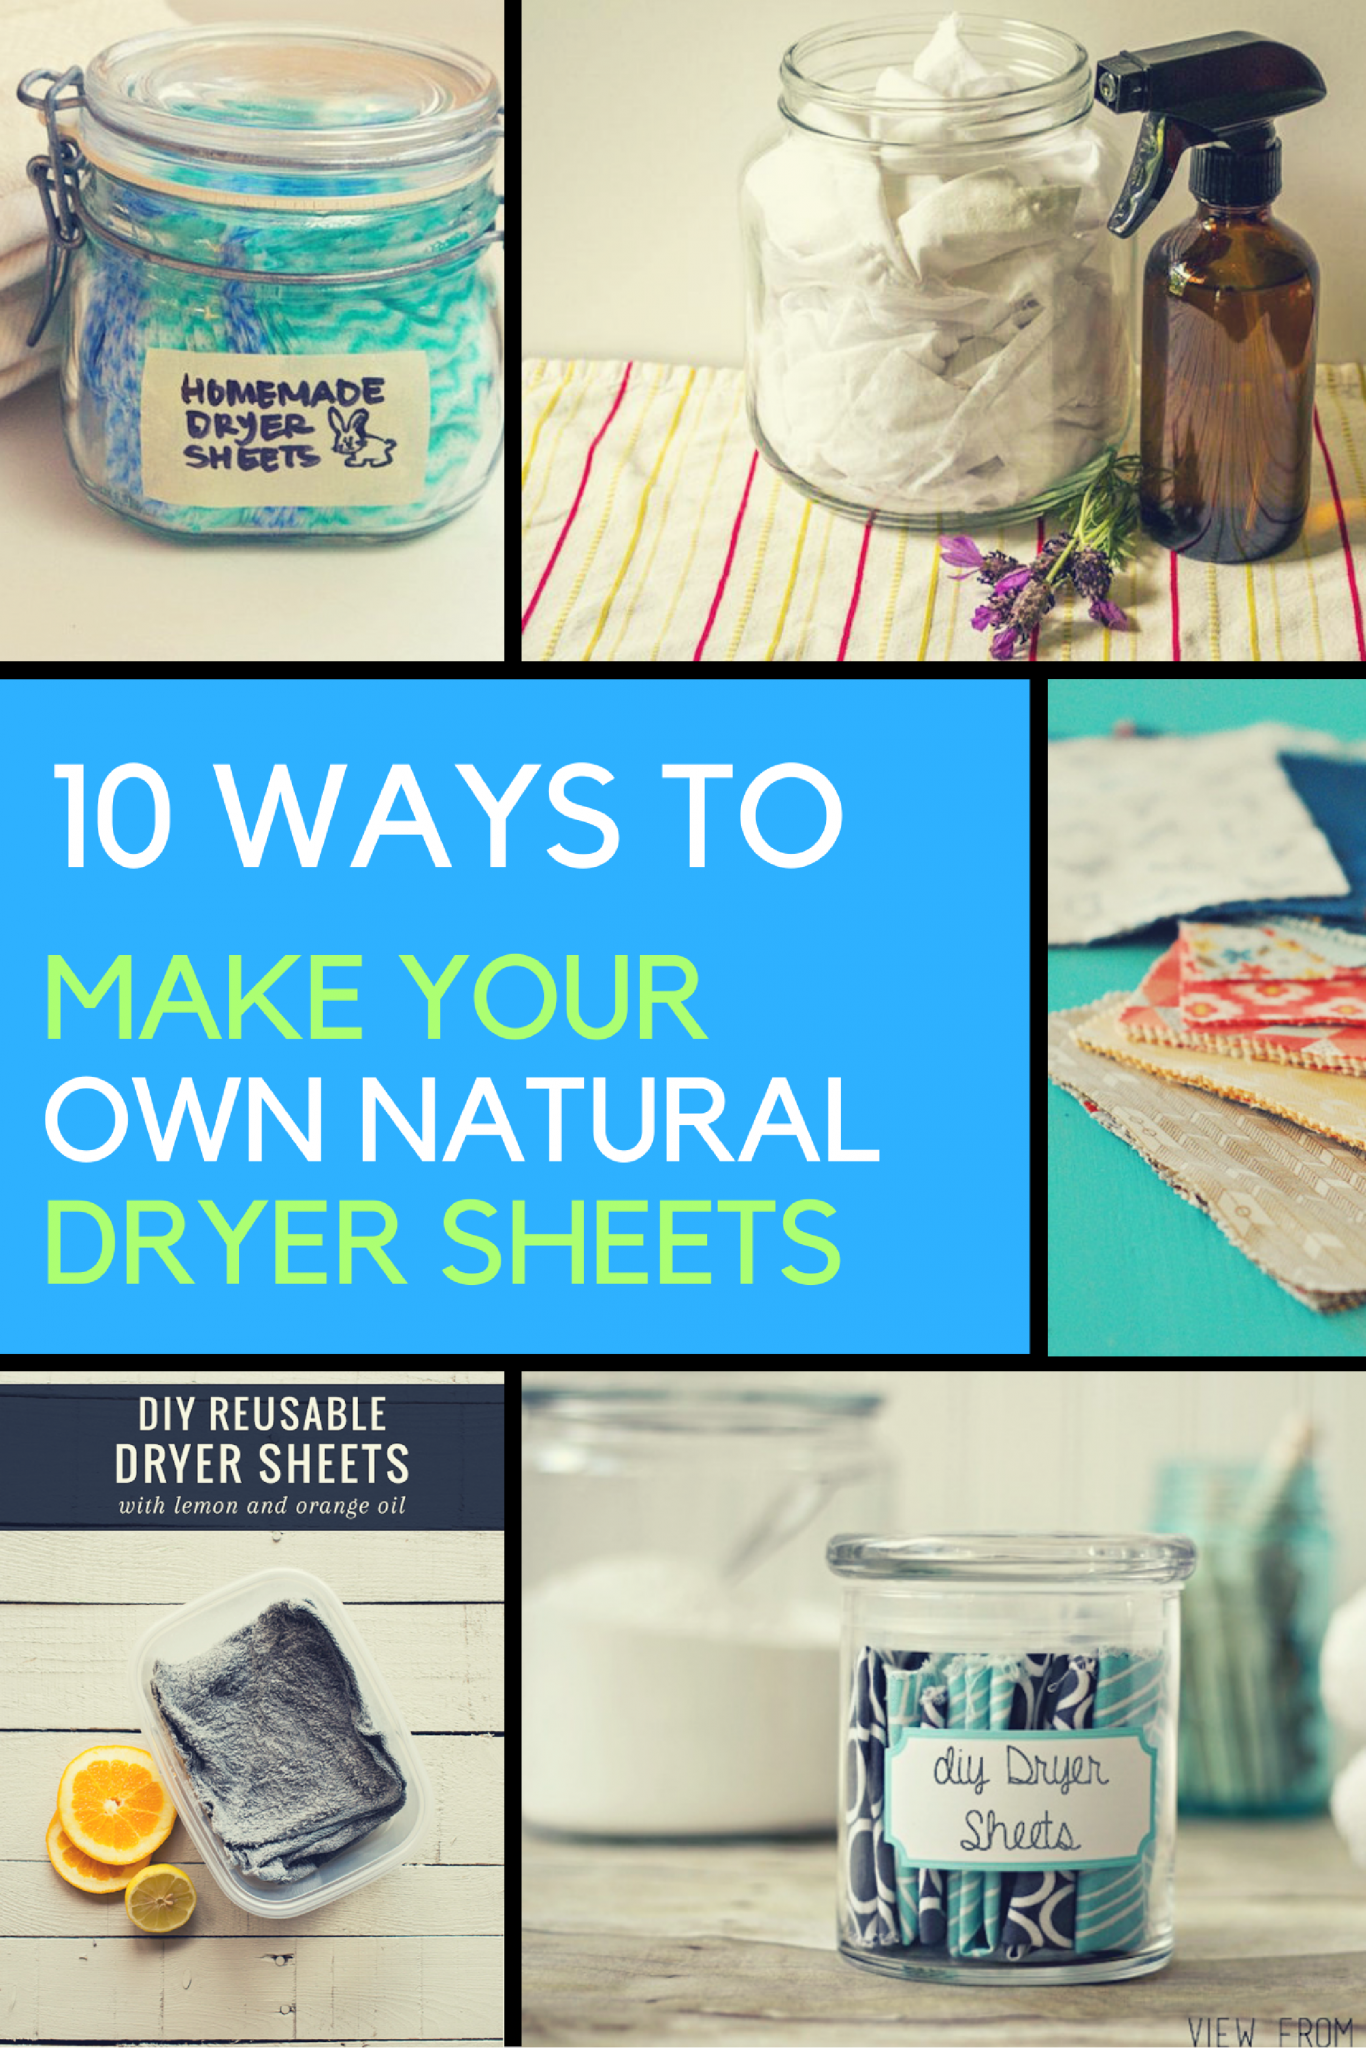 10 Ways to Make Your Own Natural Dryer Sheets in Under a 1 Minute. | Ideahacks.com